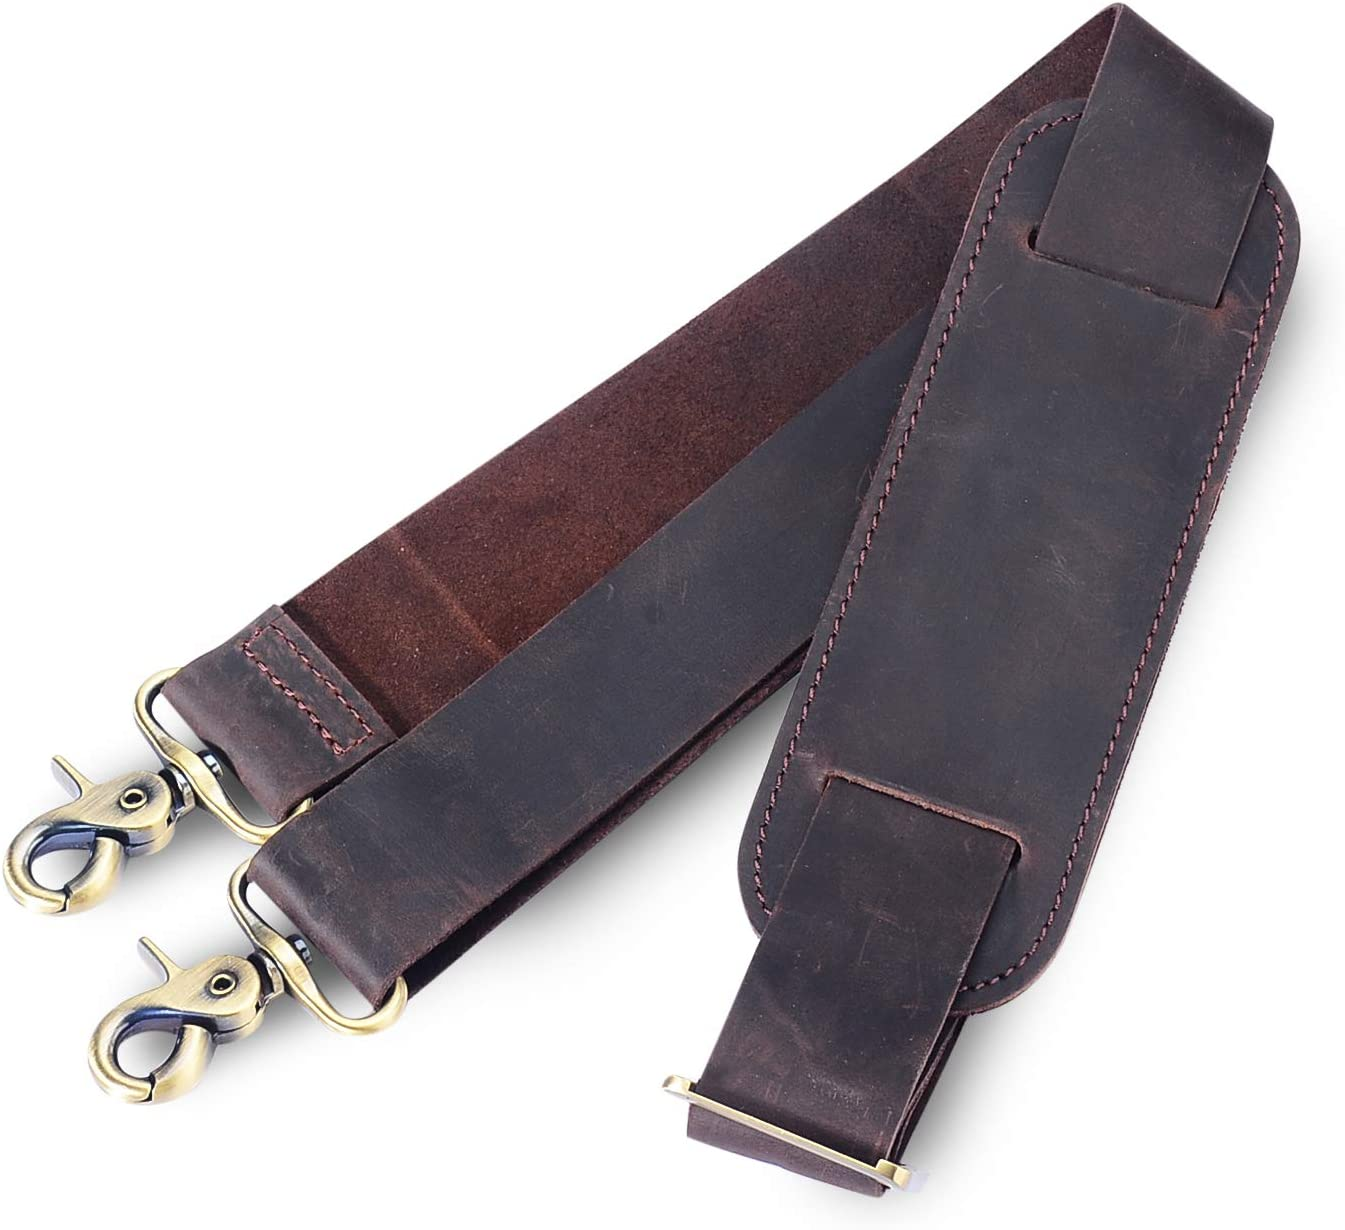 iiiVON Genuine Leather Durable Strap Replacement Leather Adjustable Shoulder Strap